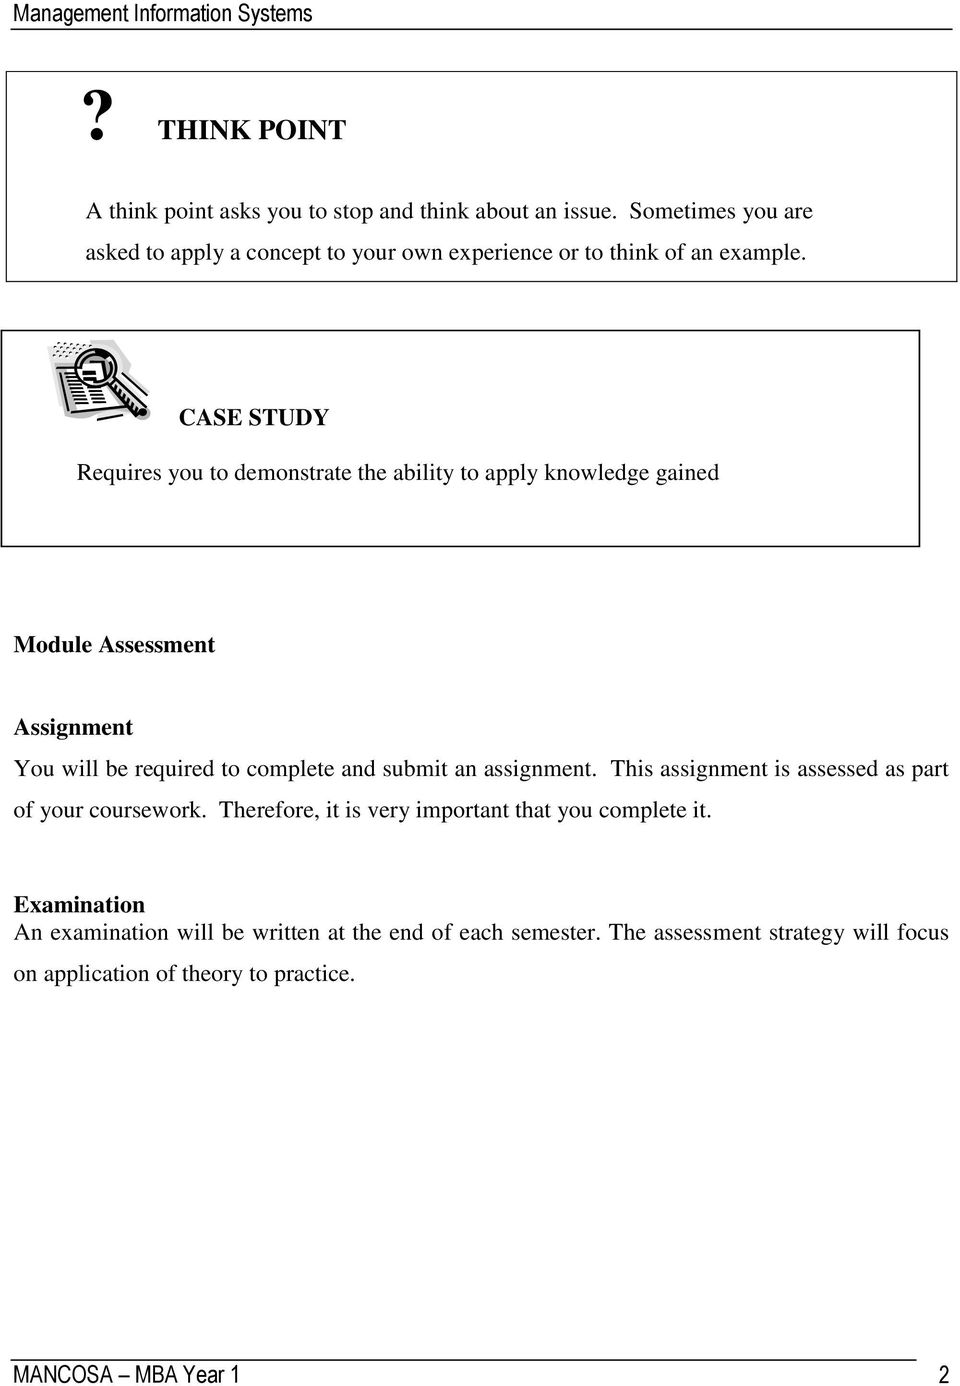 Management information systems pdf case study requires you to demonstrate the ability to apply knowledge gained module assessment assignment you fandeluxe Images